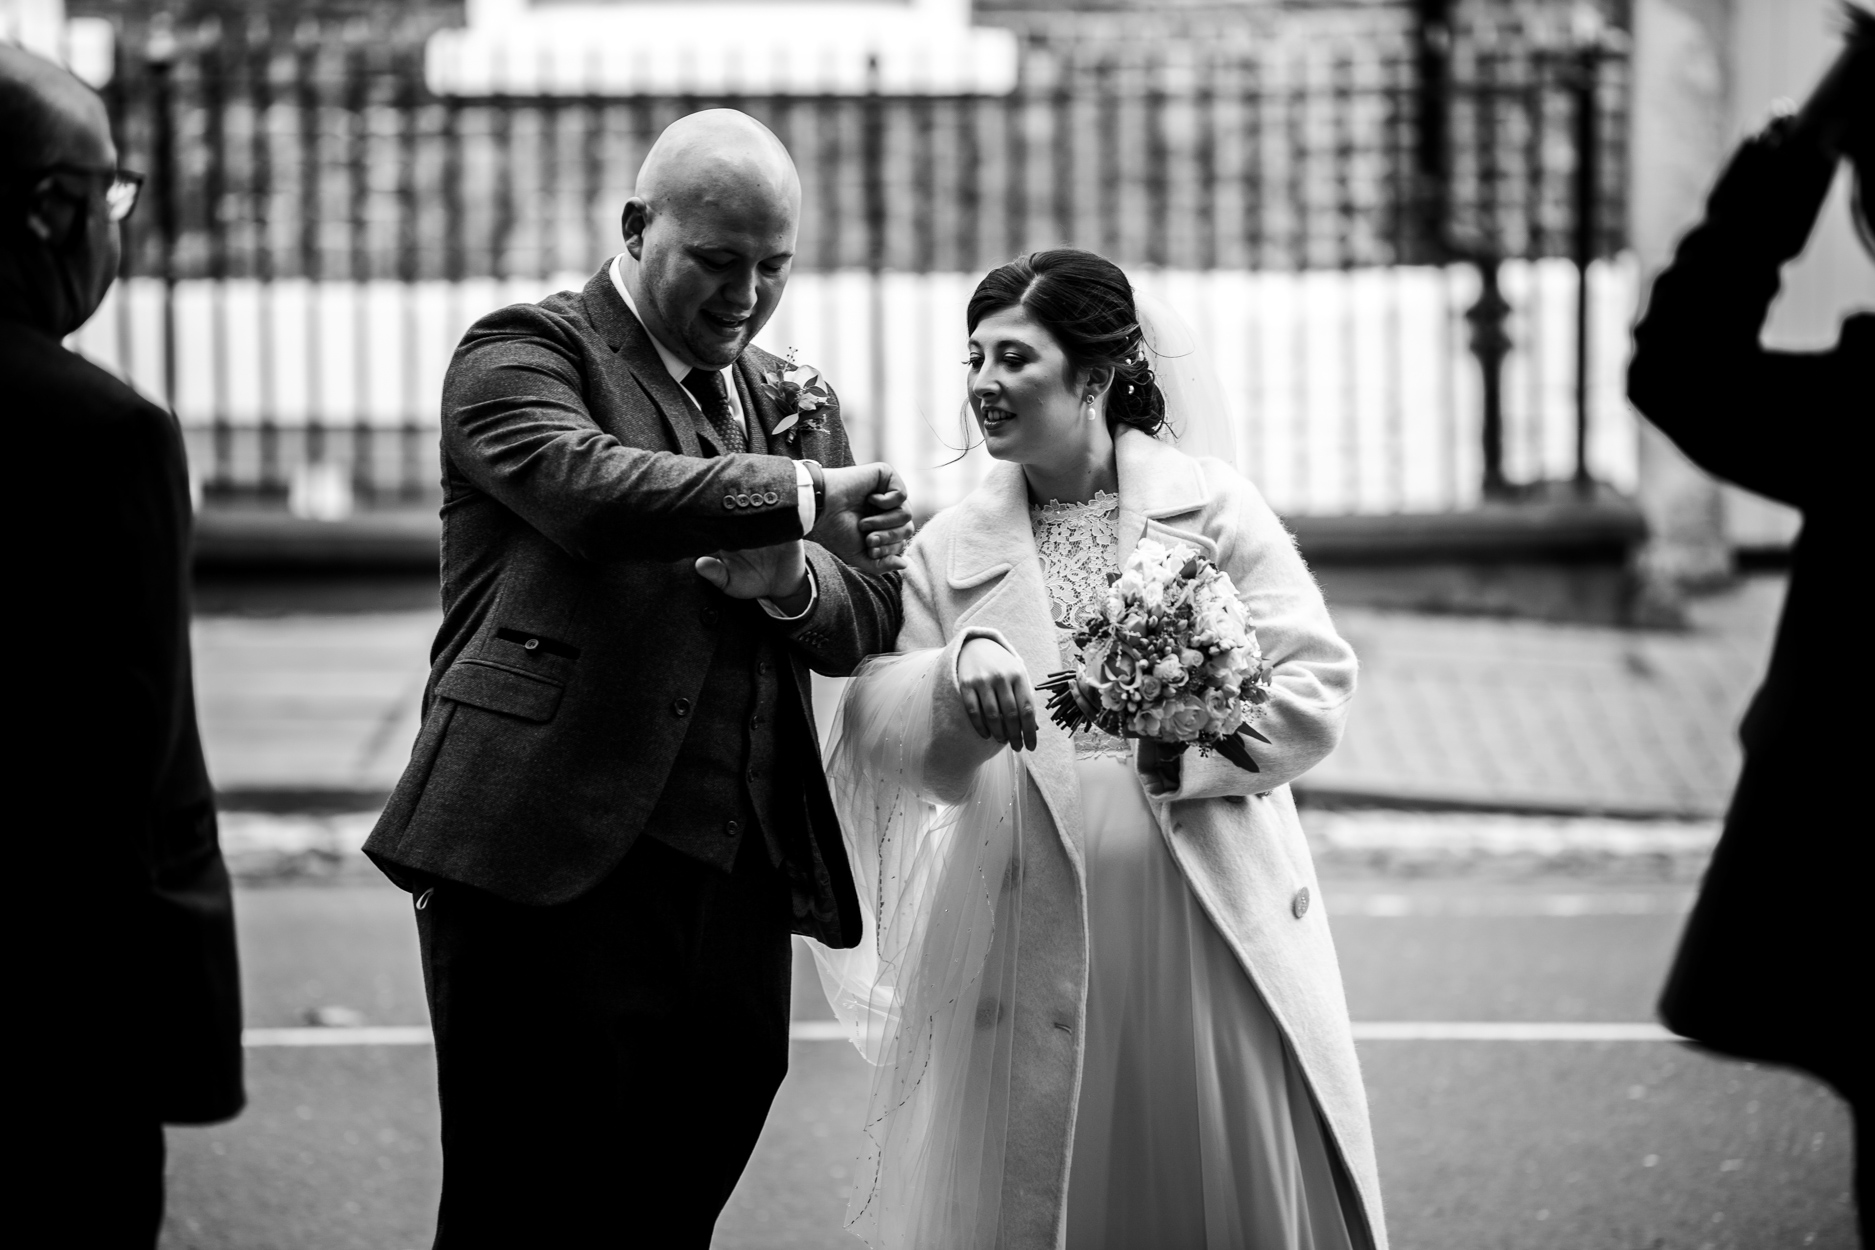 York Registry Office, UK Wedding Photographer | The bride and groom check the time